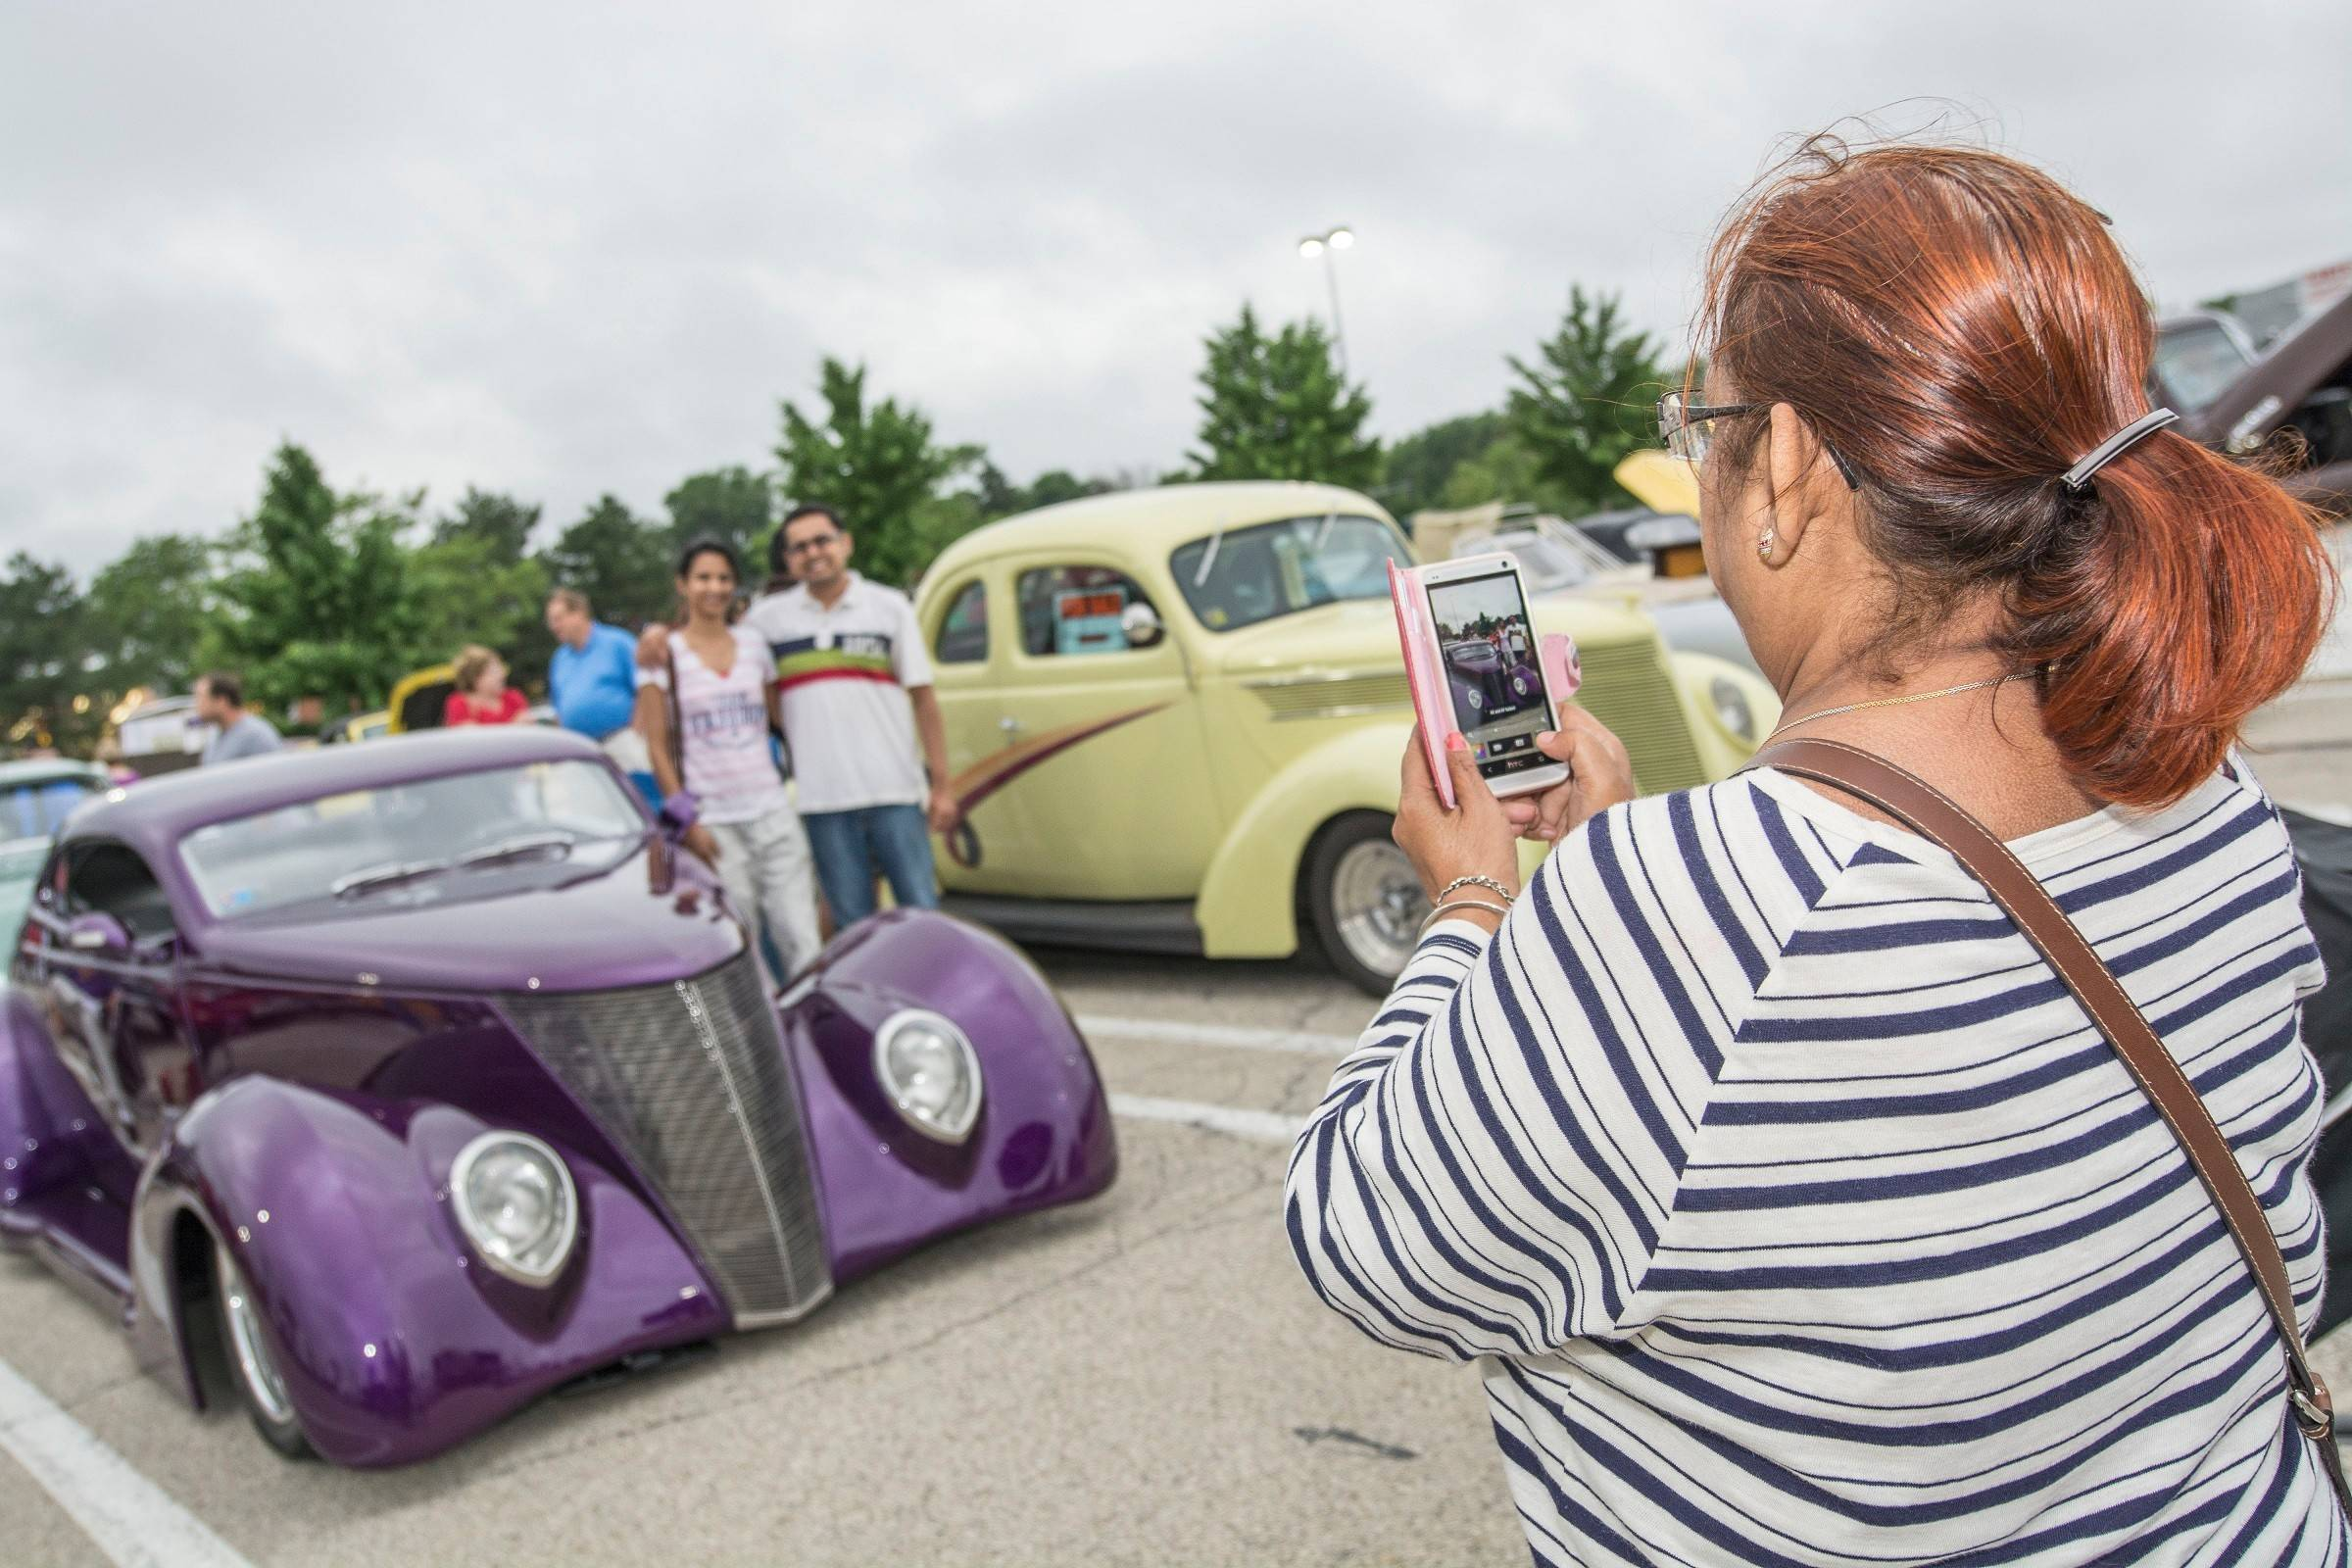 Many photo opportunities could be found among the autos at Randhurst Village's first cruise night.